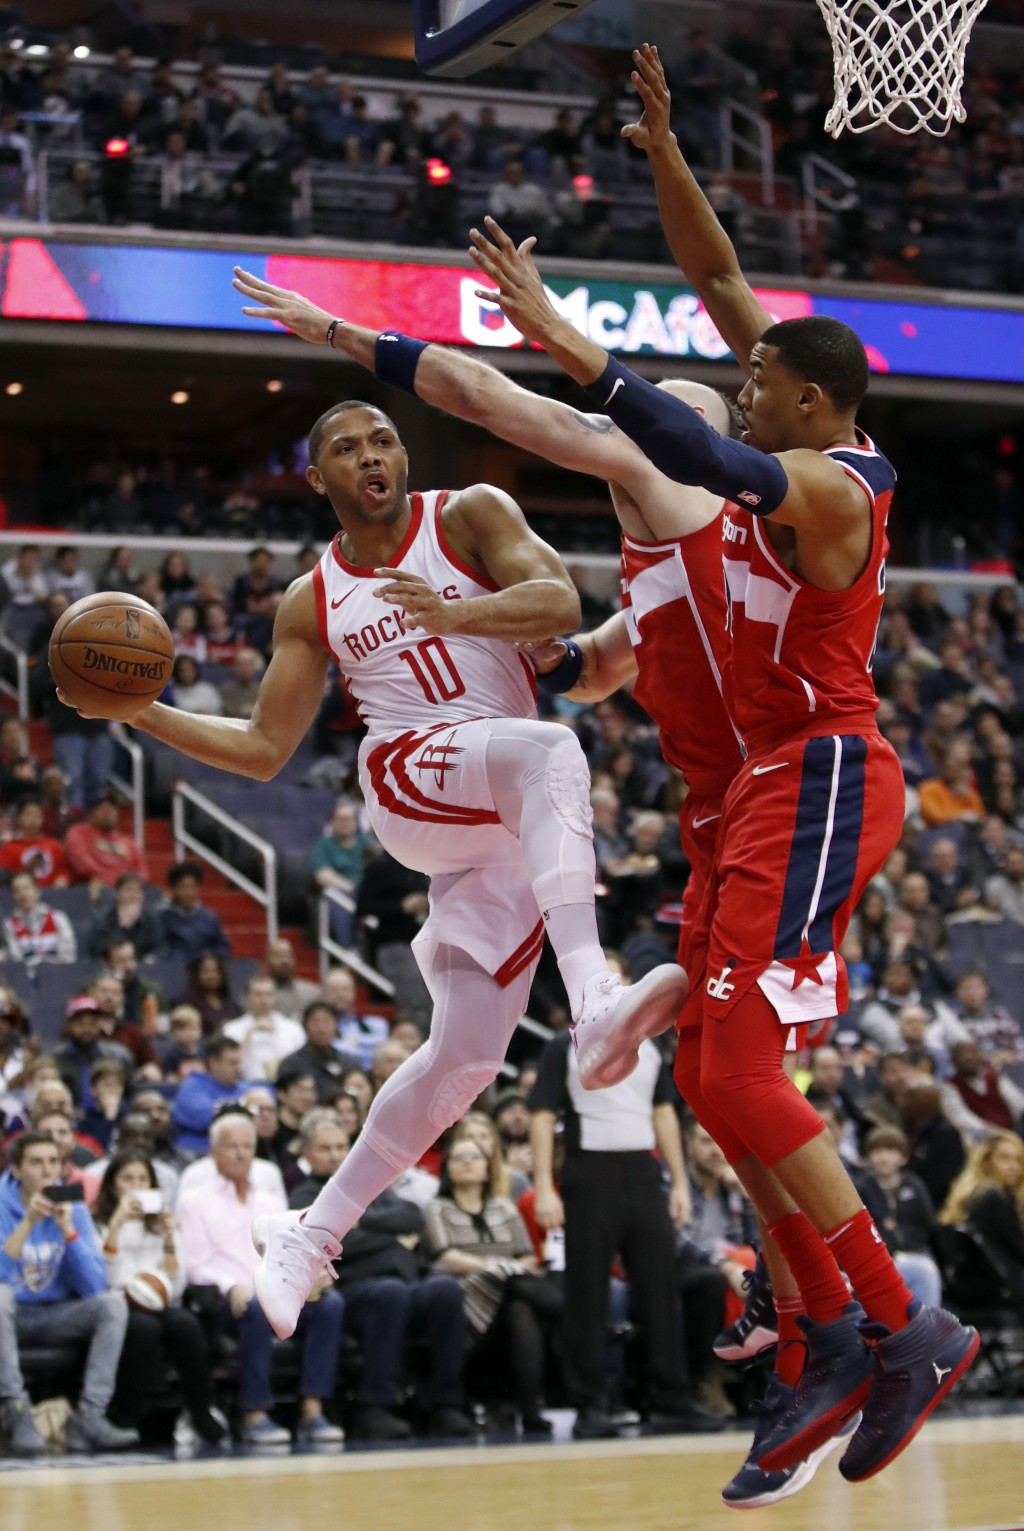 Houston Rockets guard Eric Gordon (10) passes the ball as he is guarded by Washington Wizards center Marcin Gortat (13), from Poland, and forward Otto...